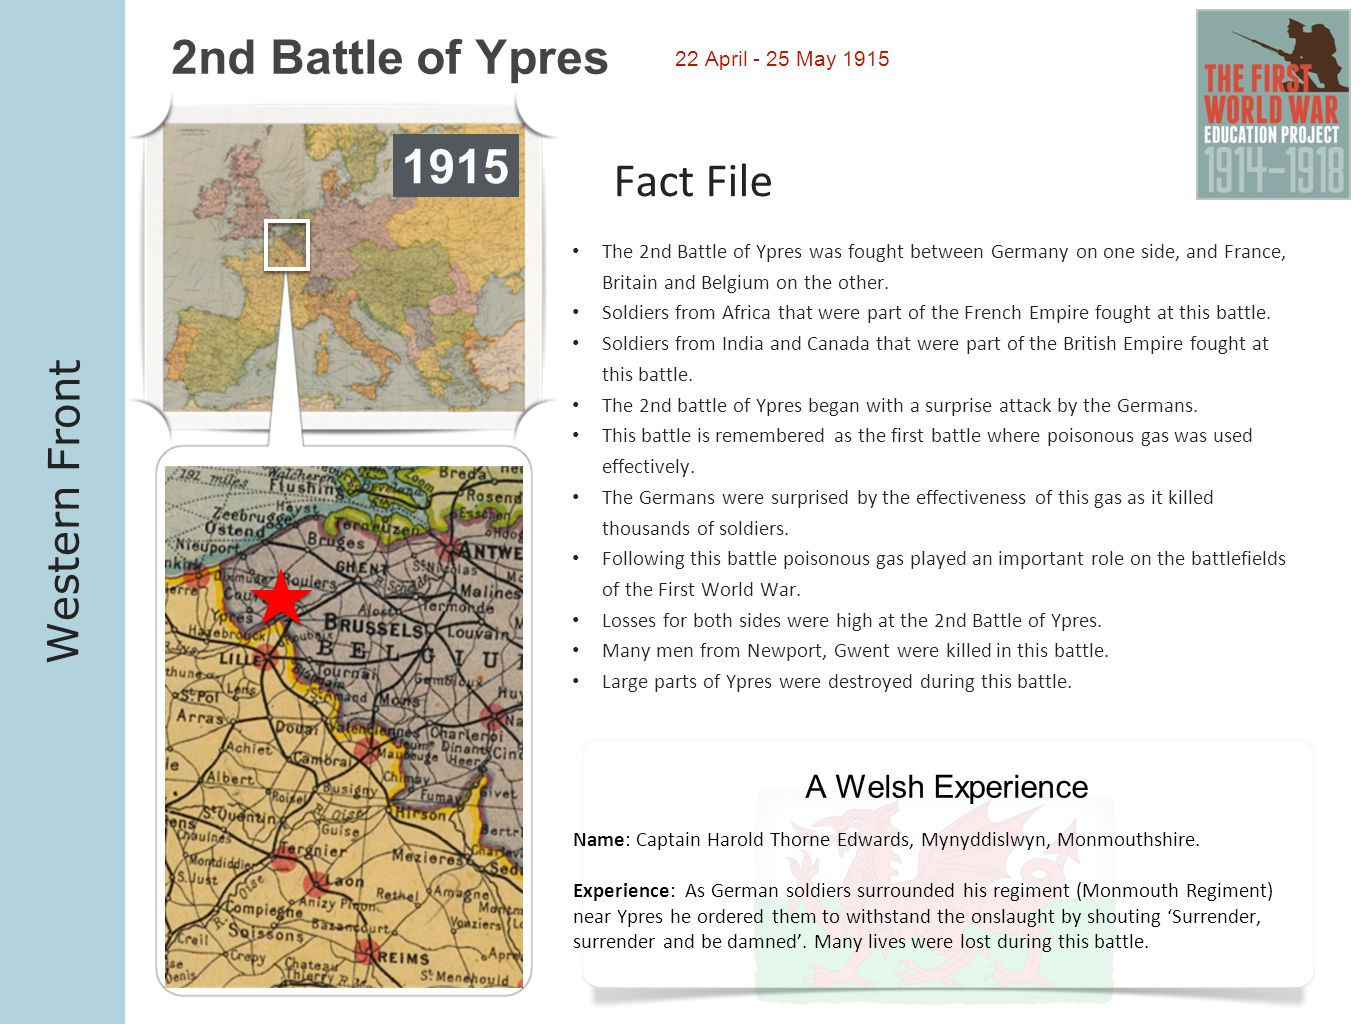 2nd Battle of Ypres 1915 Fact File Western Front A Welsh Experience